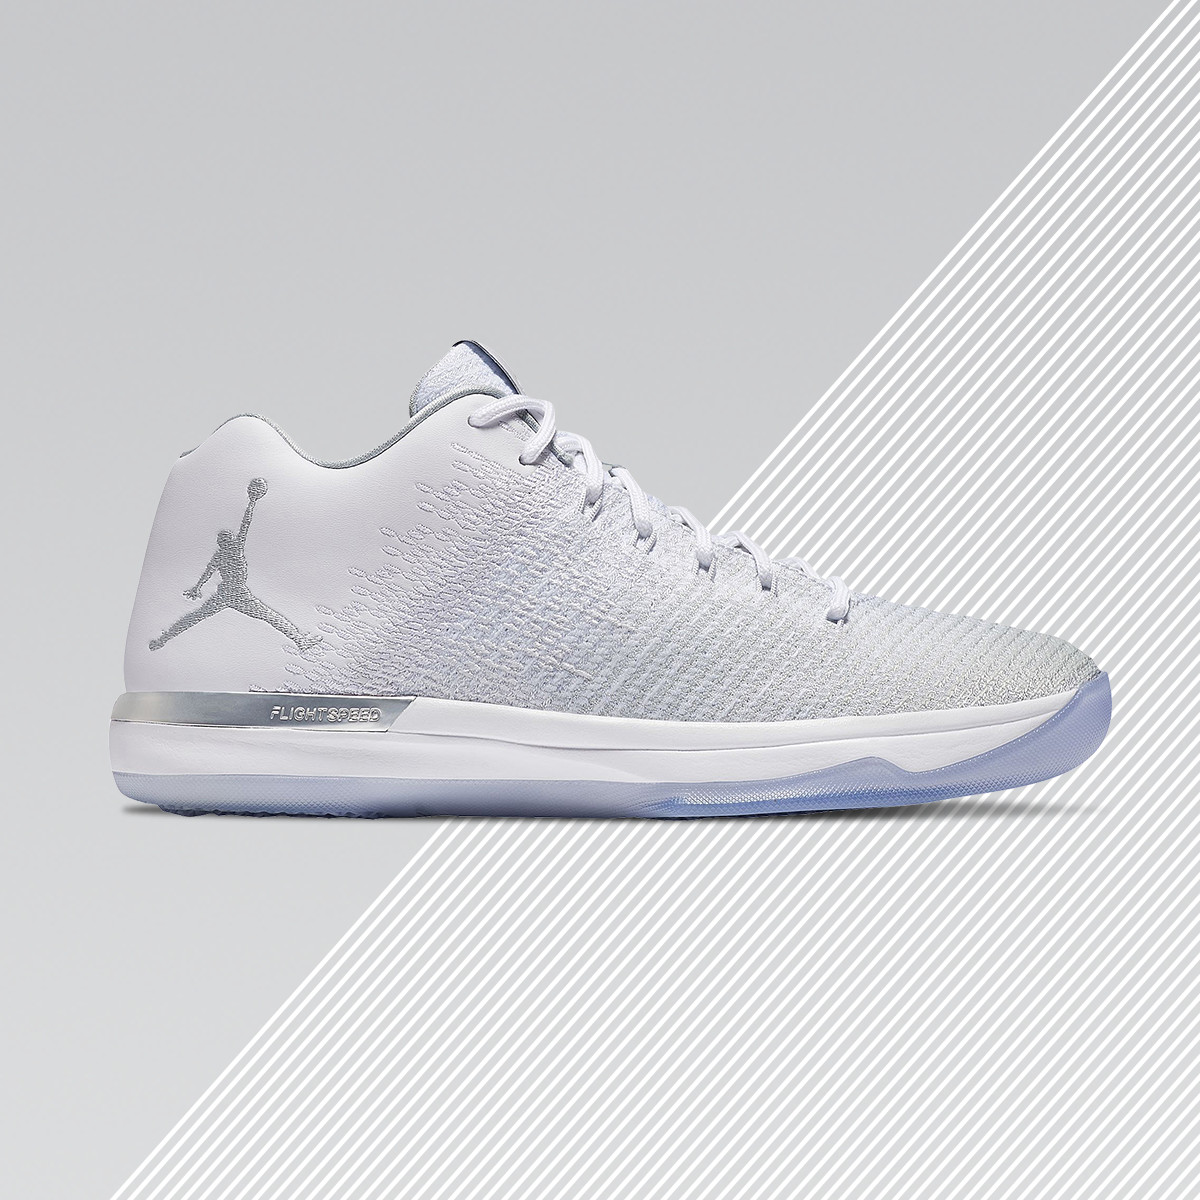 RELEASE REPORT: NIKE 'FLIP THE SWITCH' COLLECTION + AJ XXXI 'PURE MONEY'